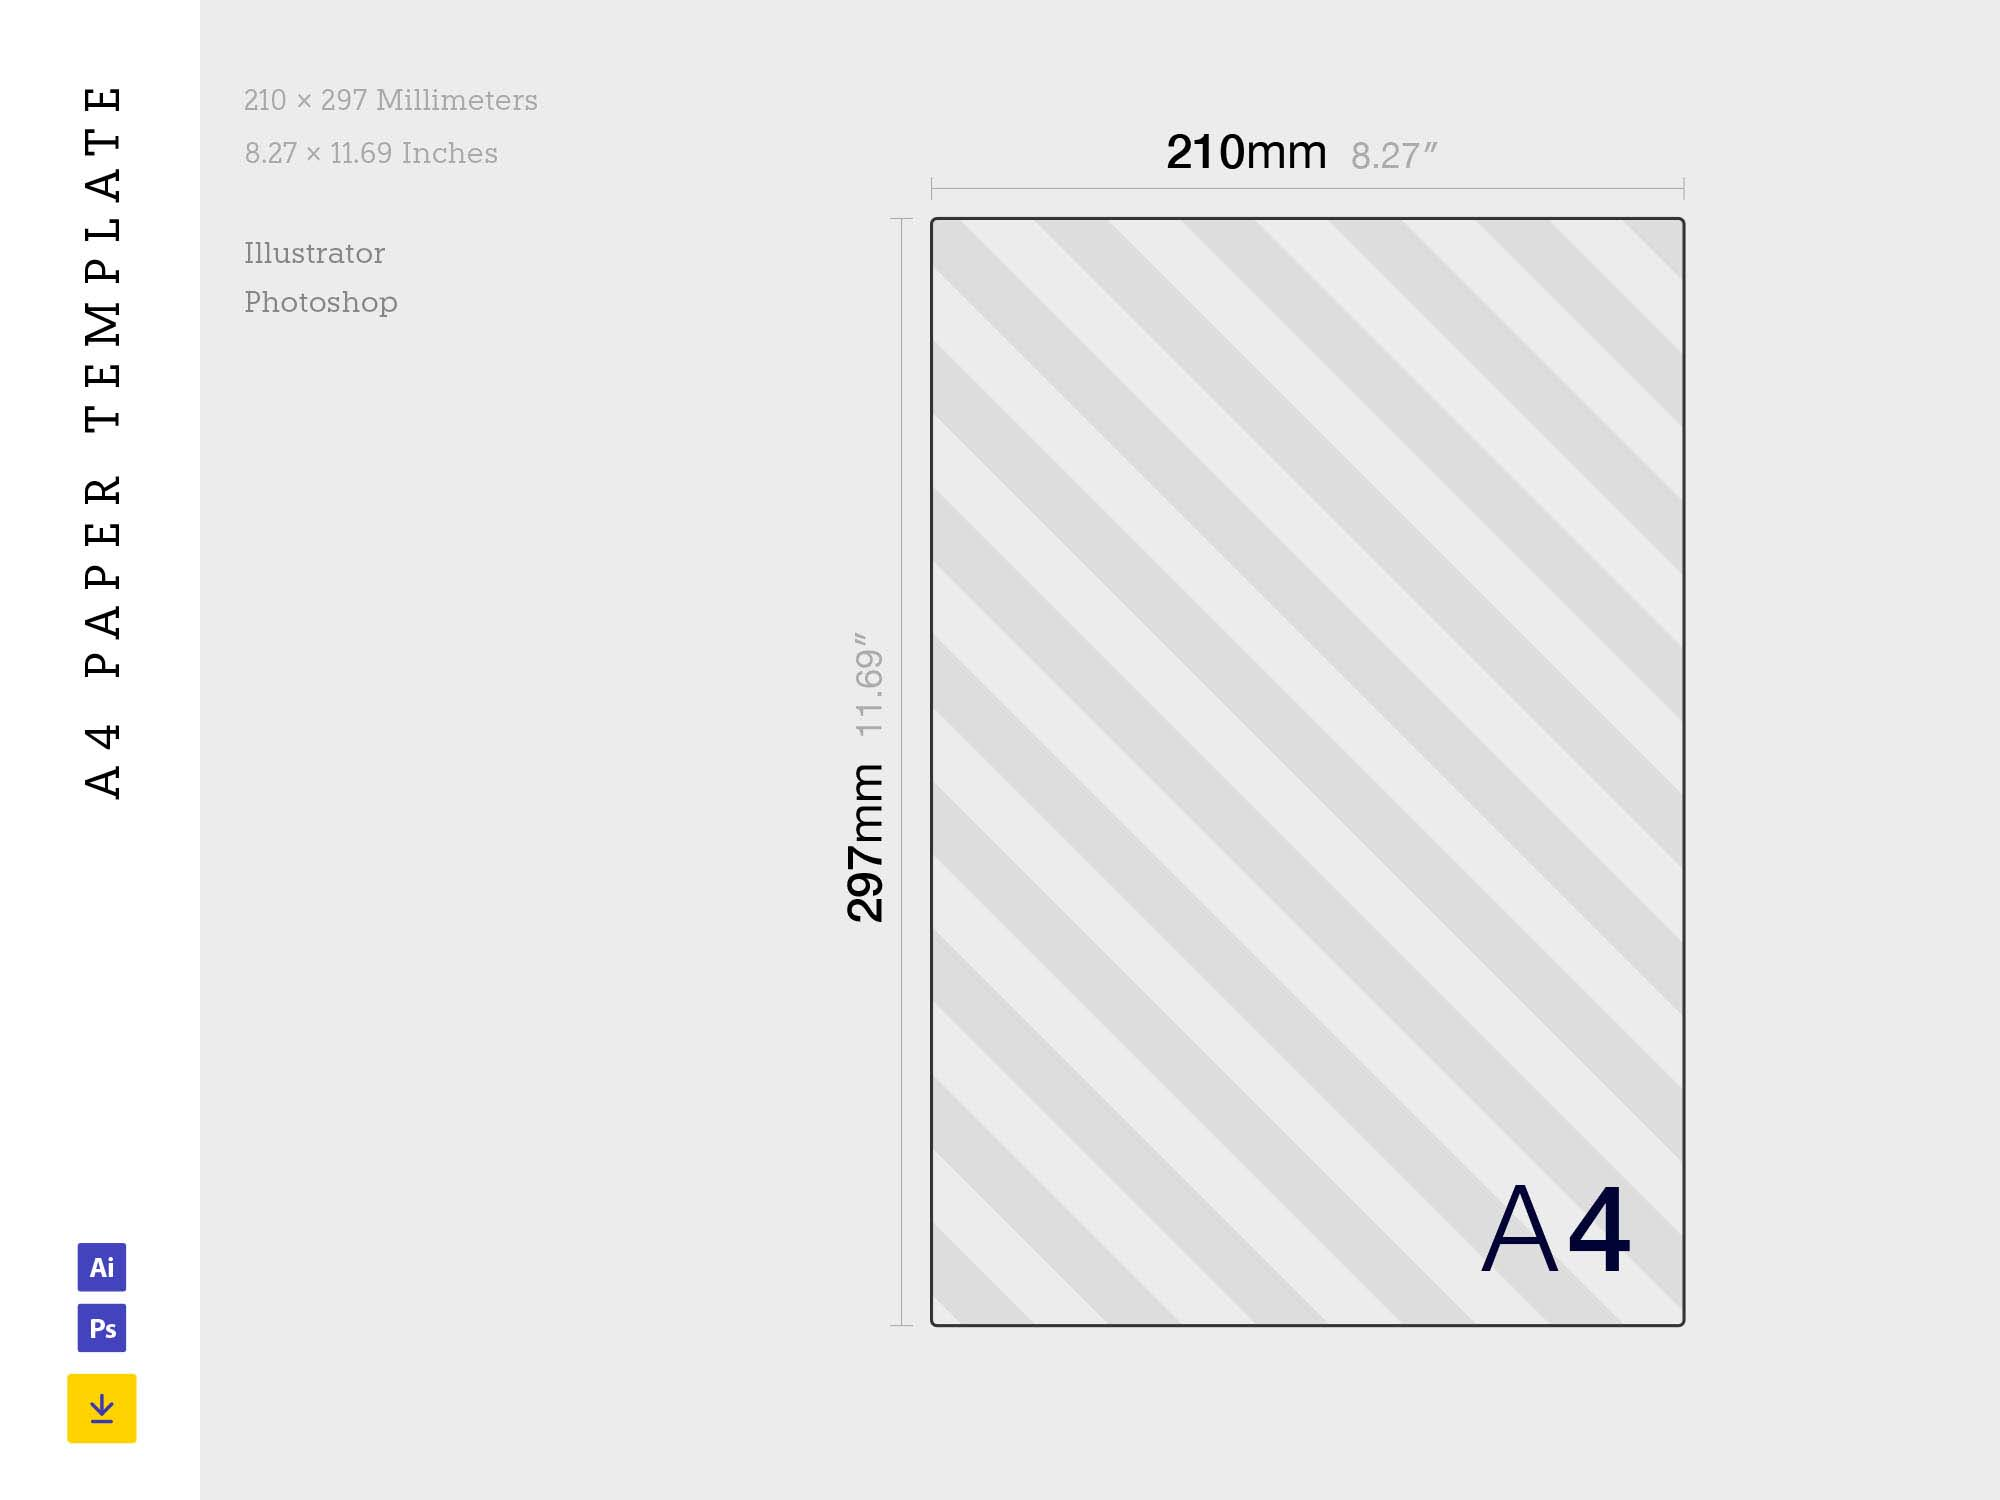 A4 Paper Template Size